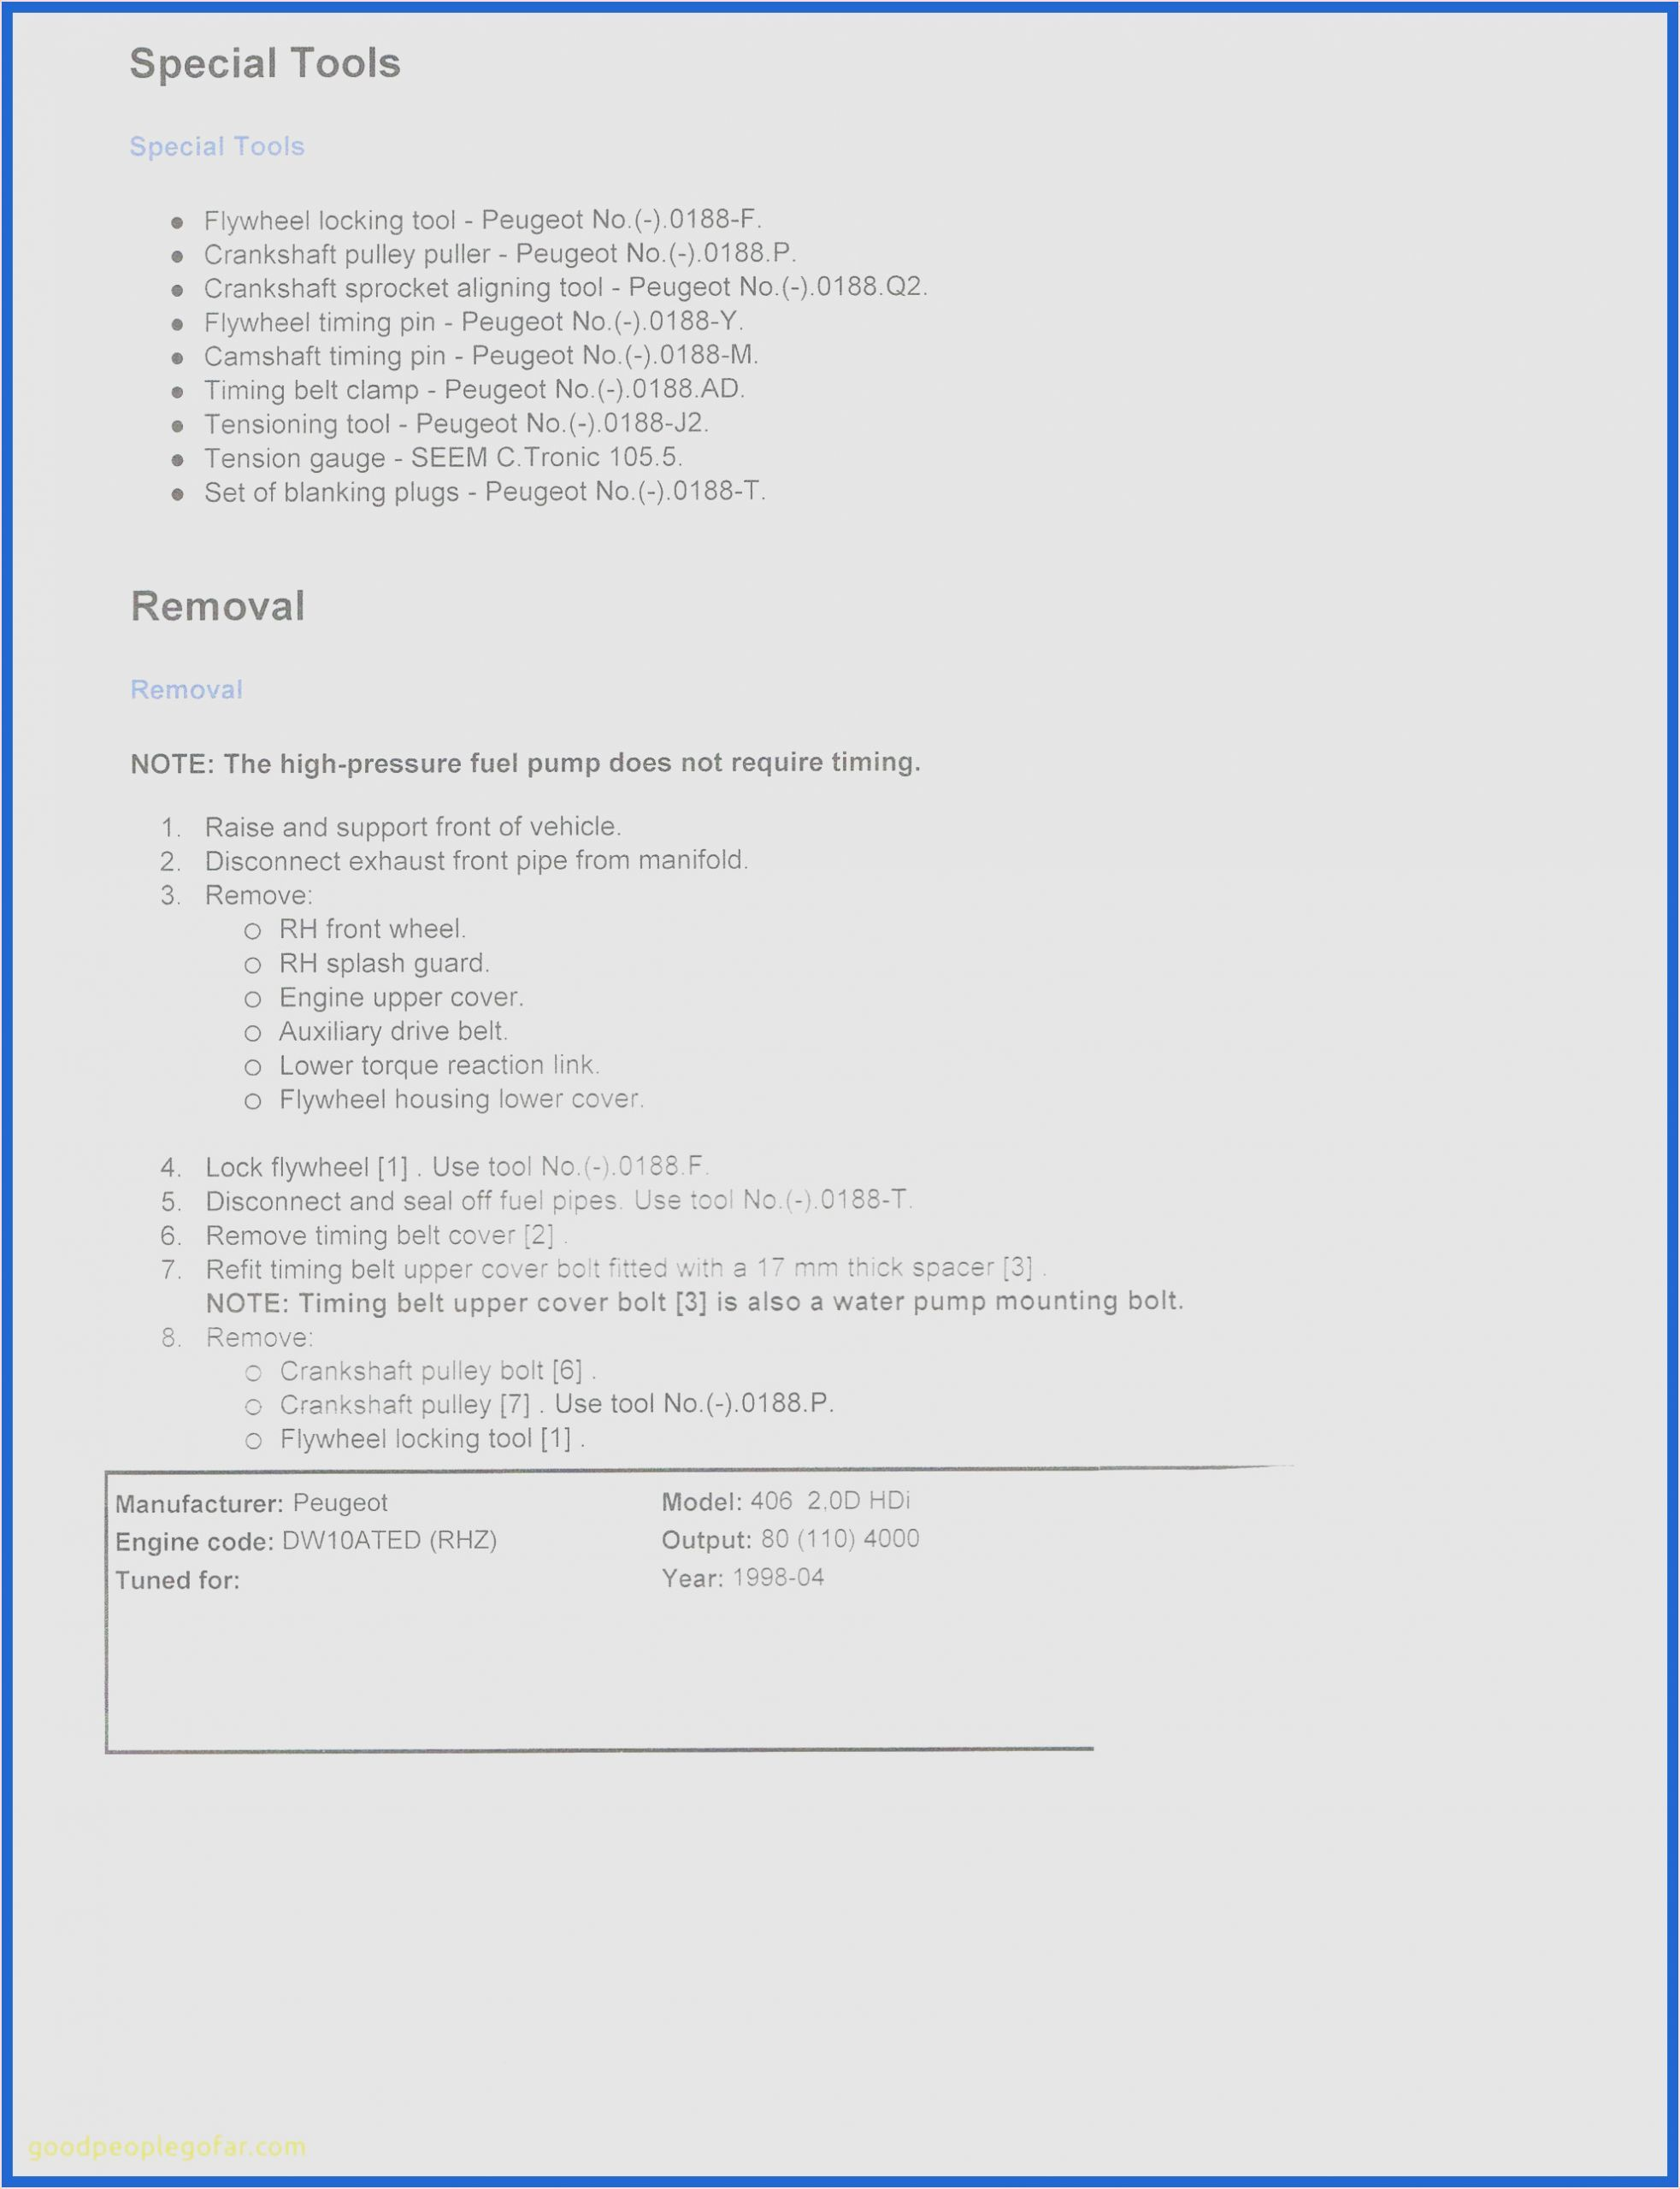 3 Verb Worksheet Types Of 14 First Time Resume With No Experience Samples In 2020 Cover Letter For Resume Best Resume Template Business Card Template Word